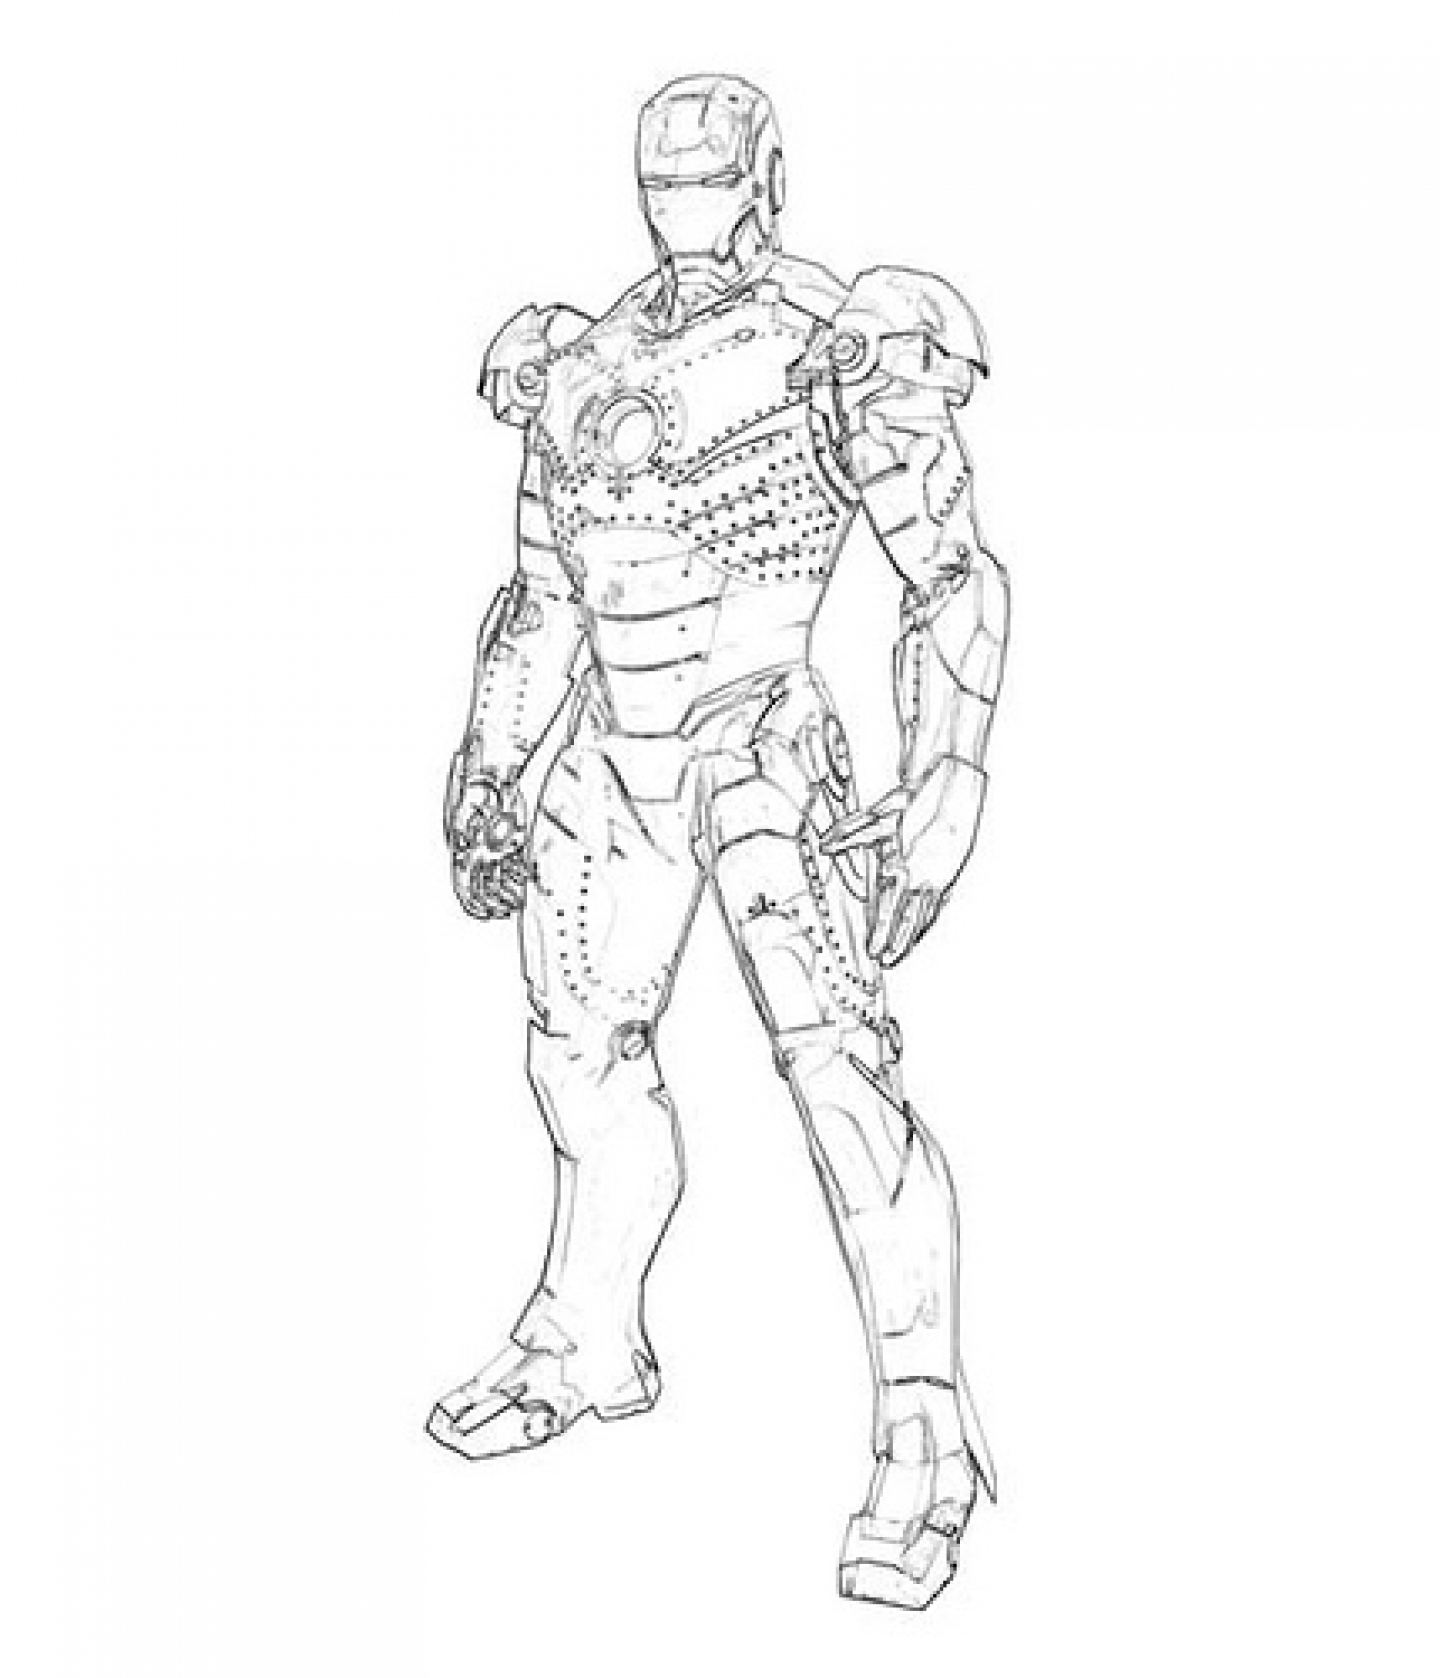 1440x1678 5 Creative Ironman Coloring Pages